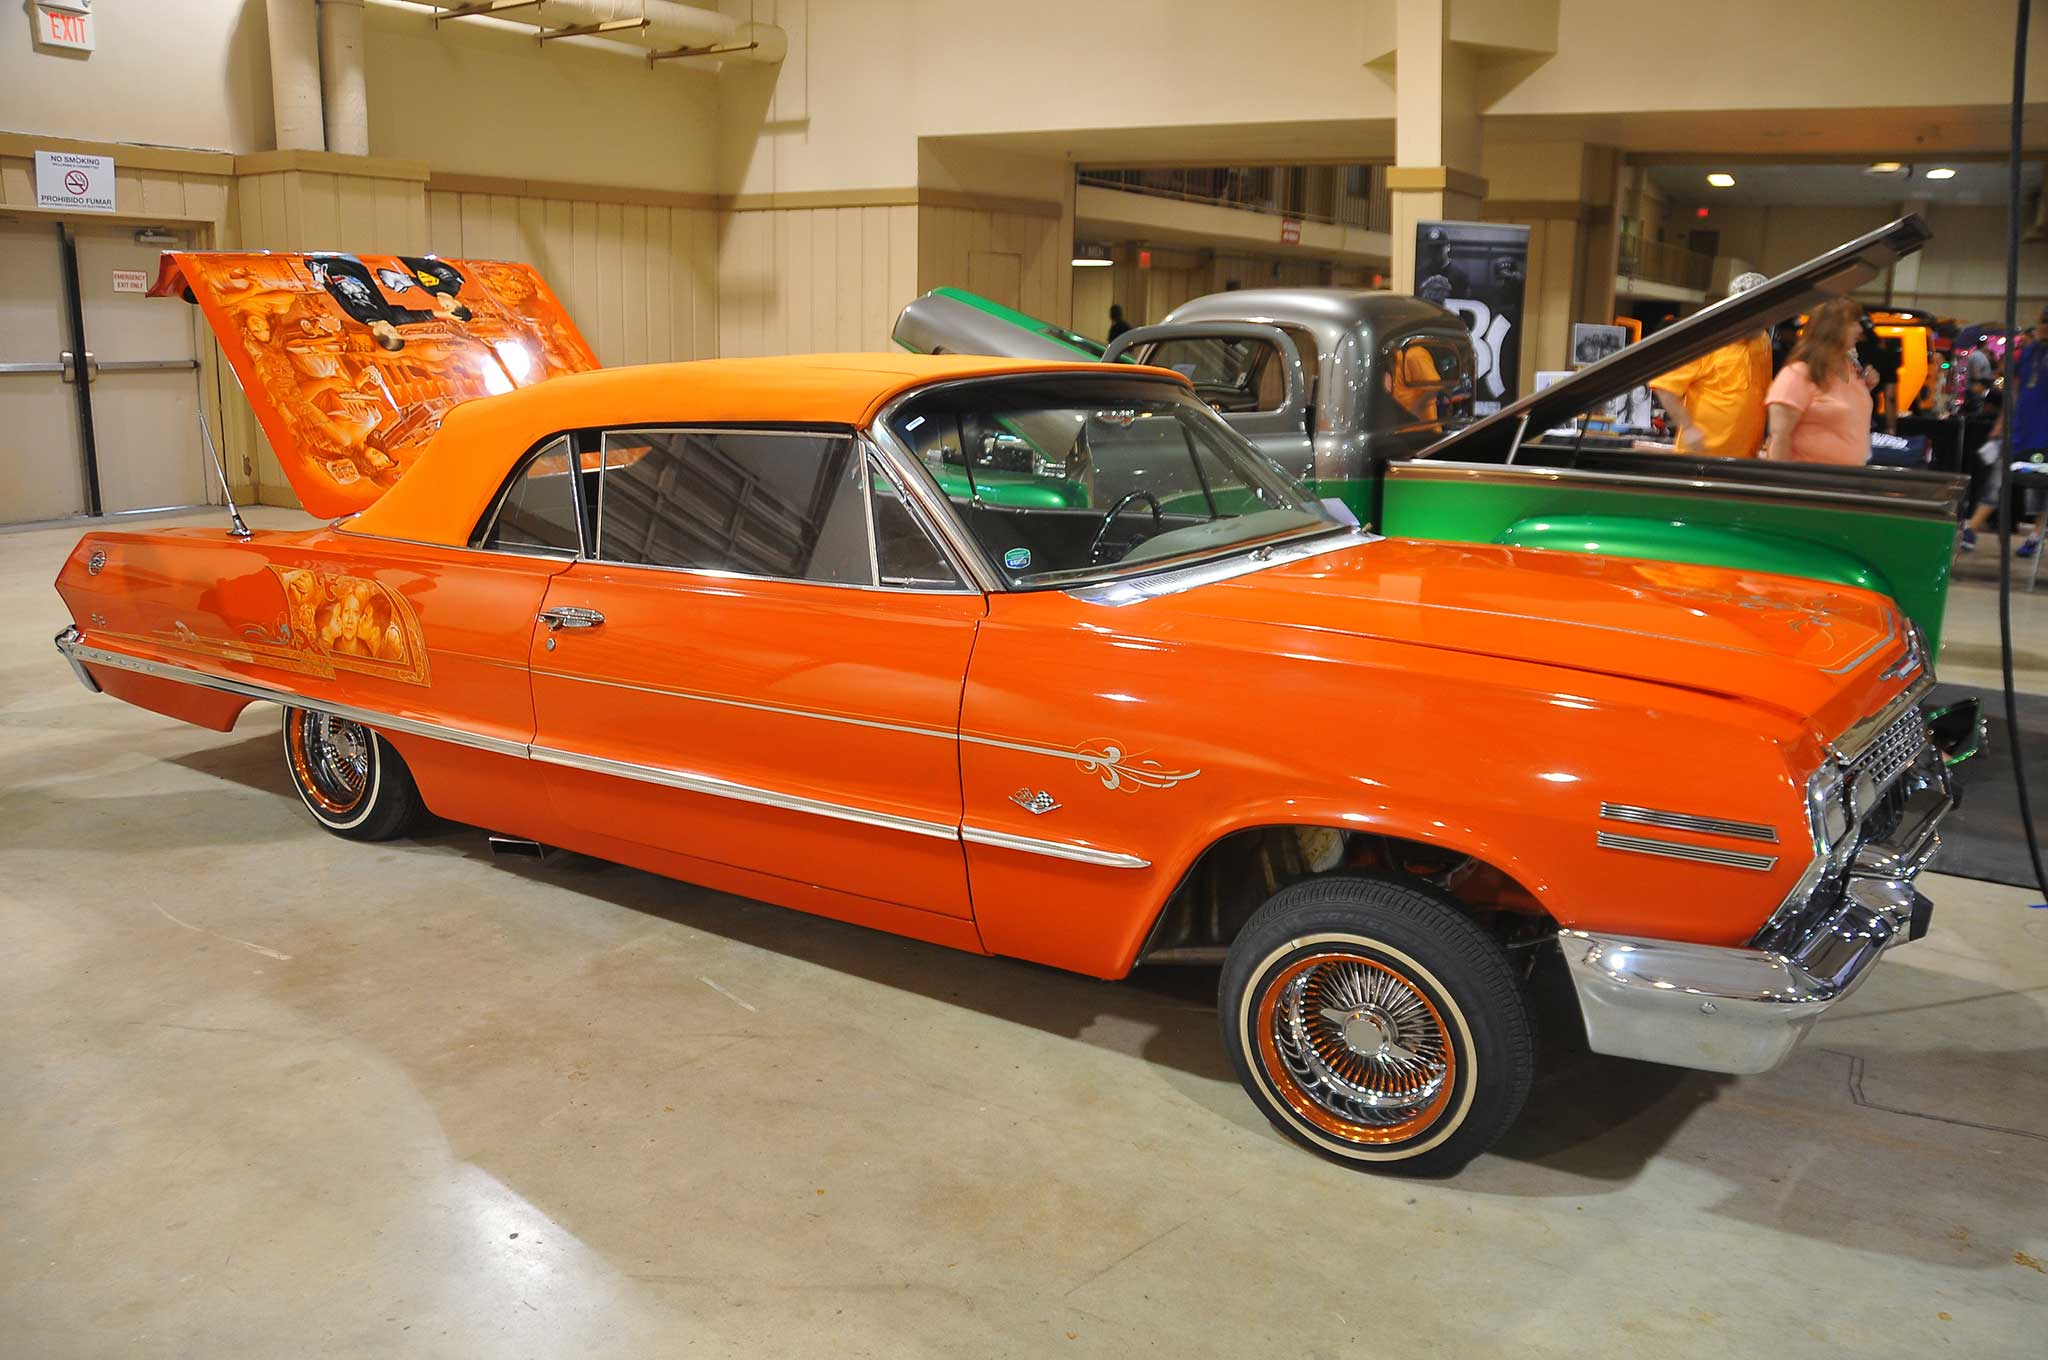 Miami Lowrider Super Show Orange Impala